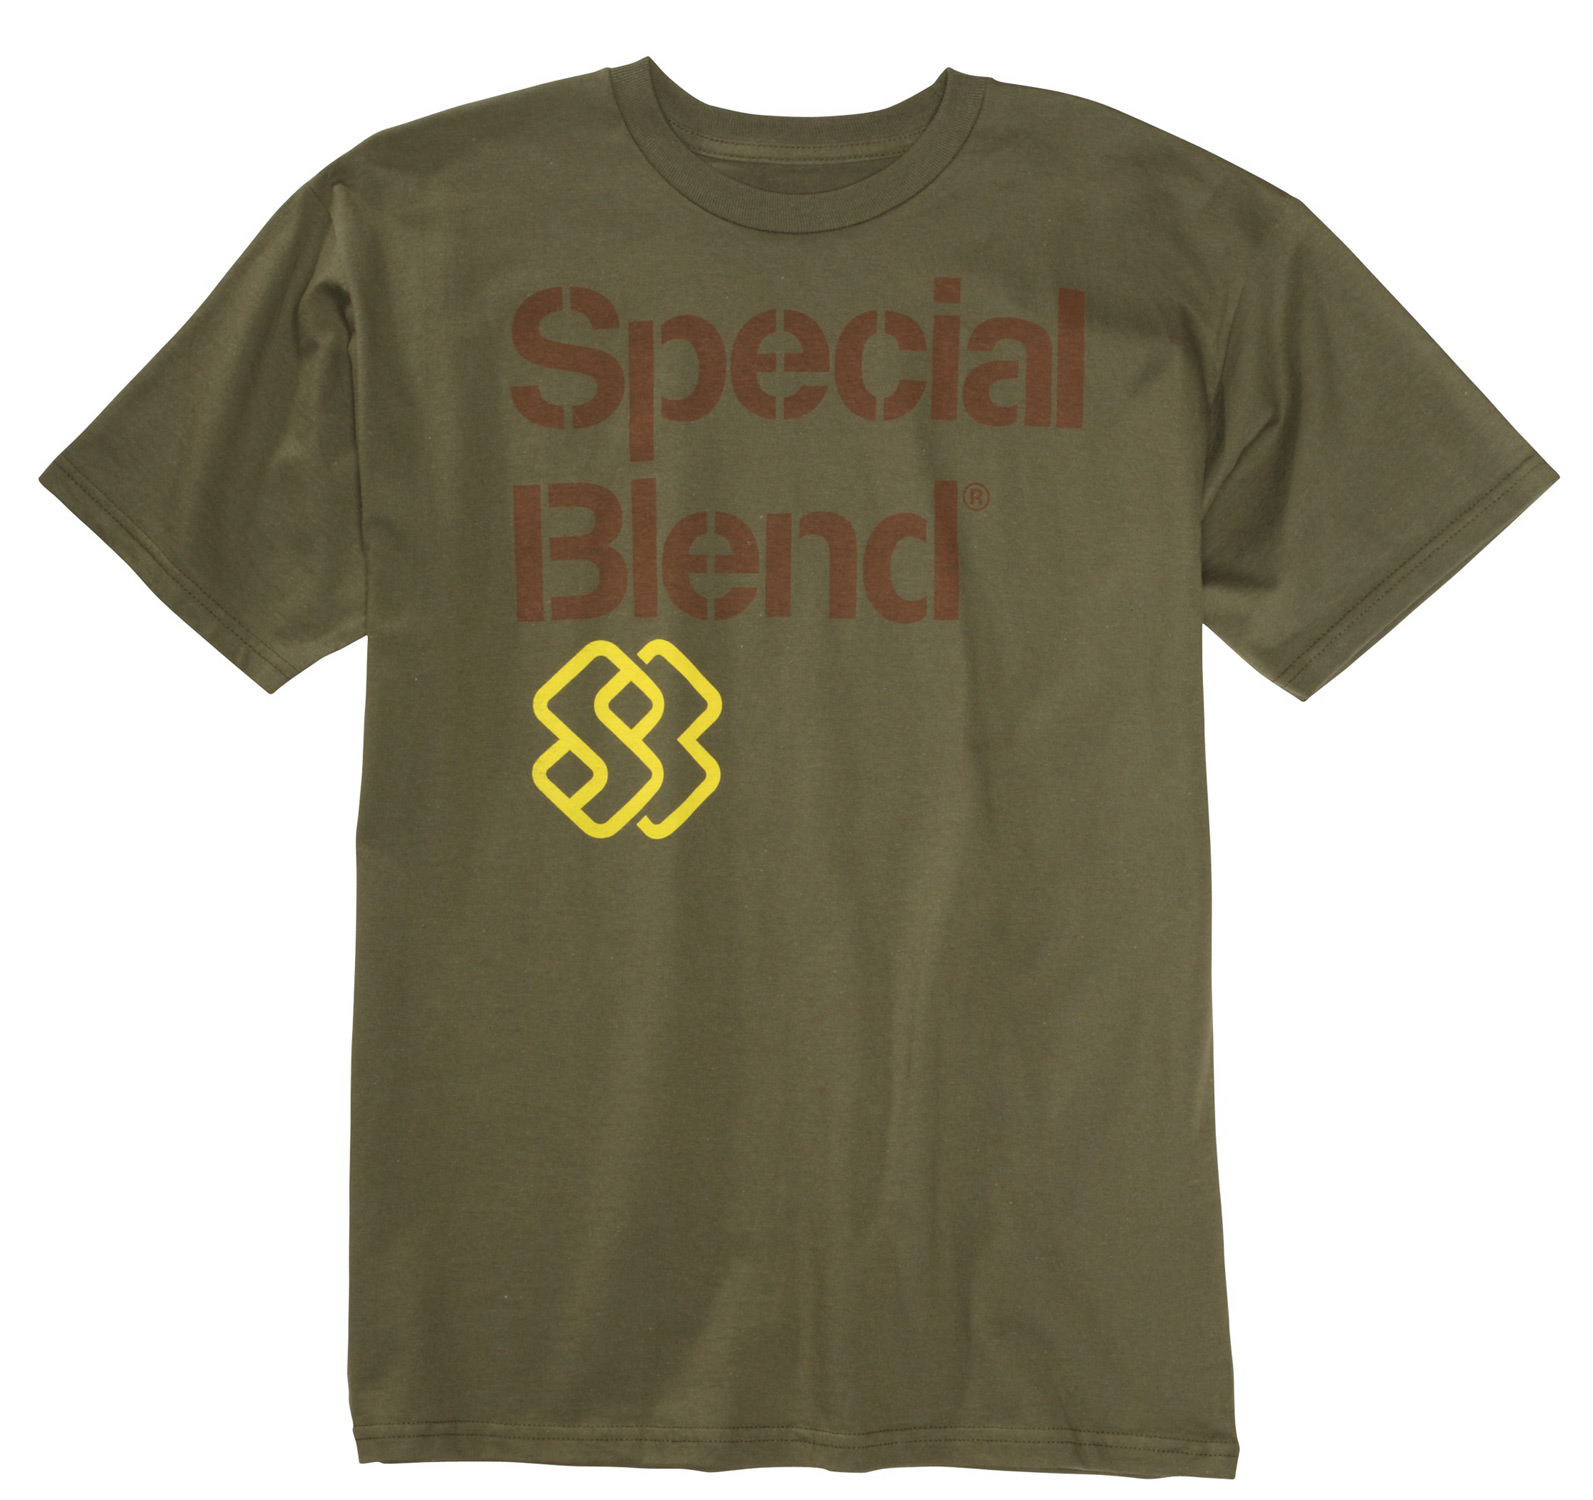 Key Features of The Special Blend STK Stencil T-Shirt: Regular Fit Crew Neck Short Sleeve 100% cotton - $9.95